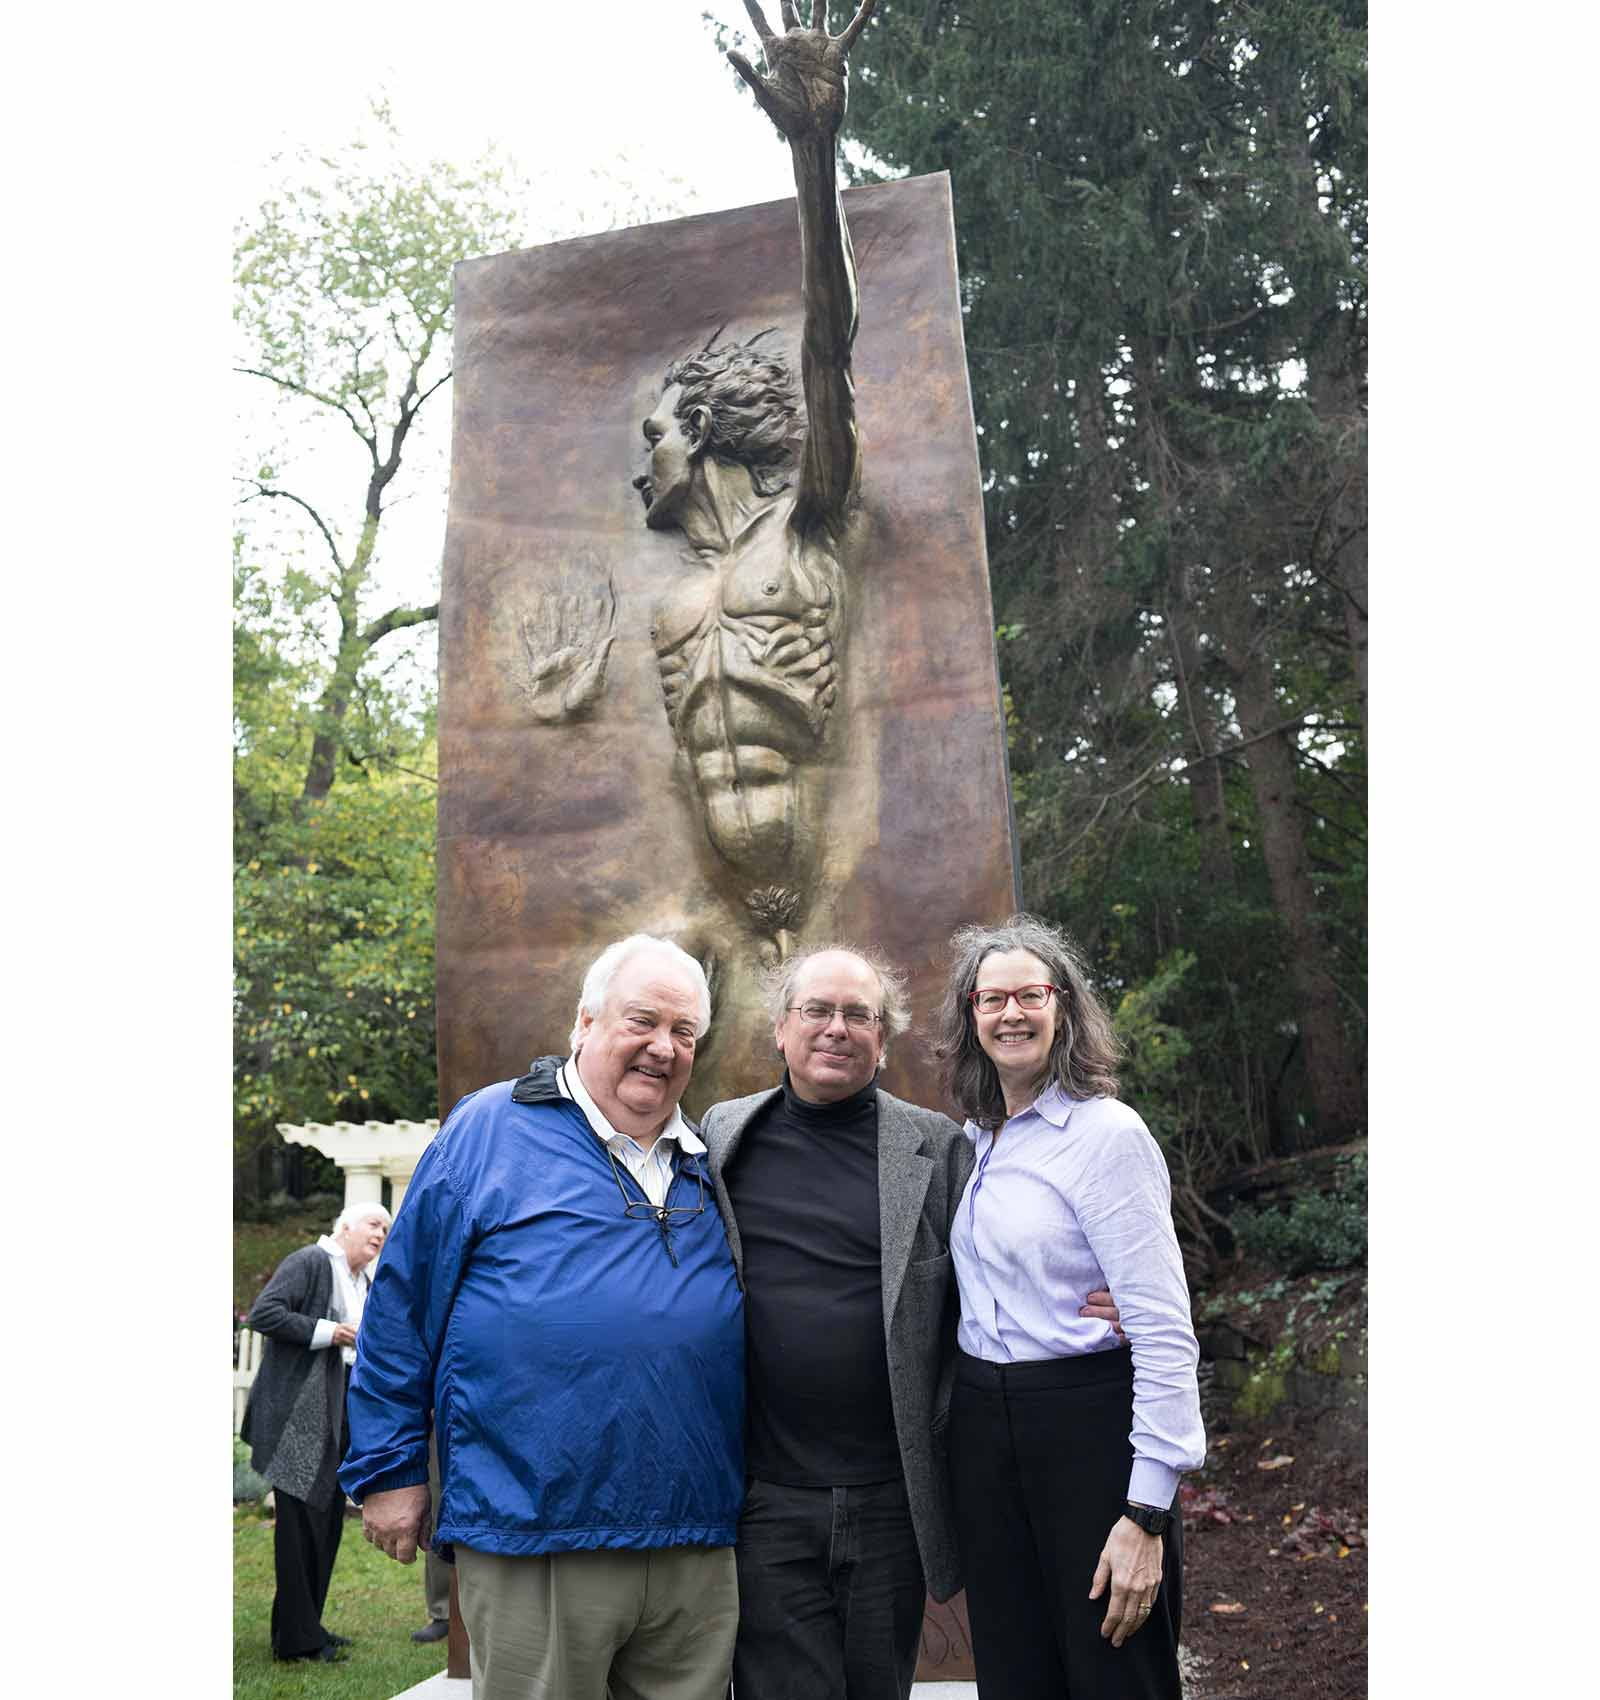 Tom and mary Steffef Blaske with sculptor Andrew DeVries at the unveiling of the Other Side of Eden at their home in Ann Arbor, MI